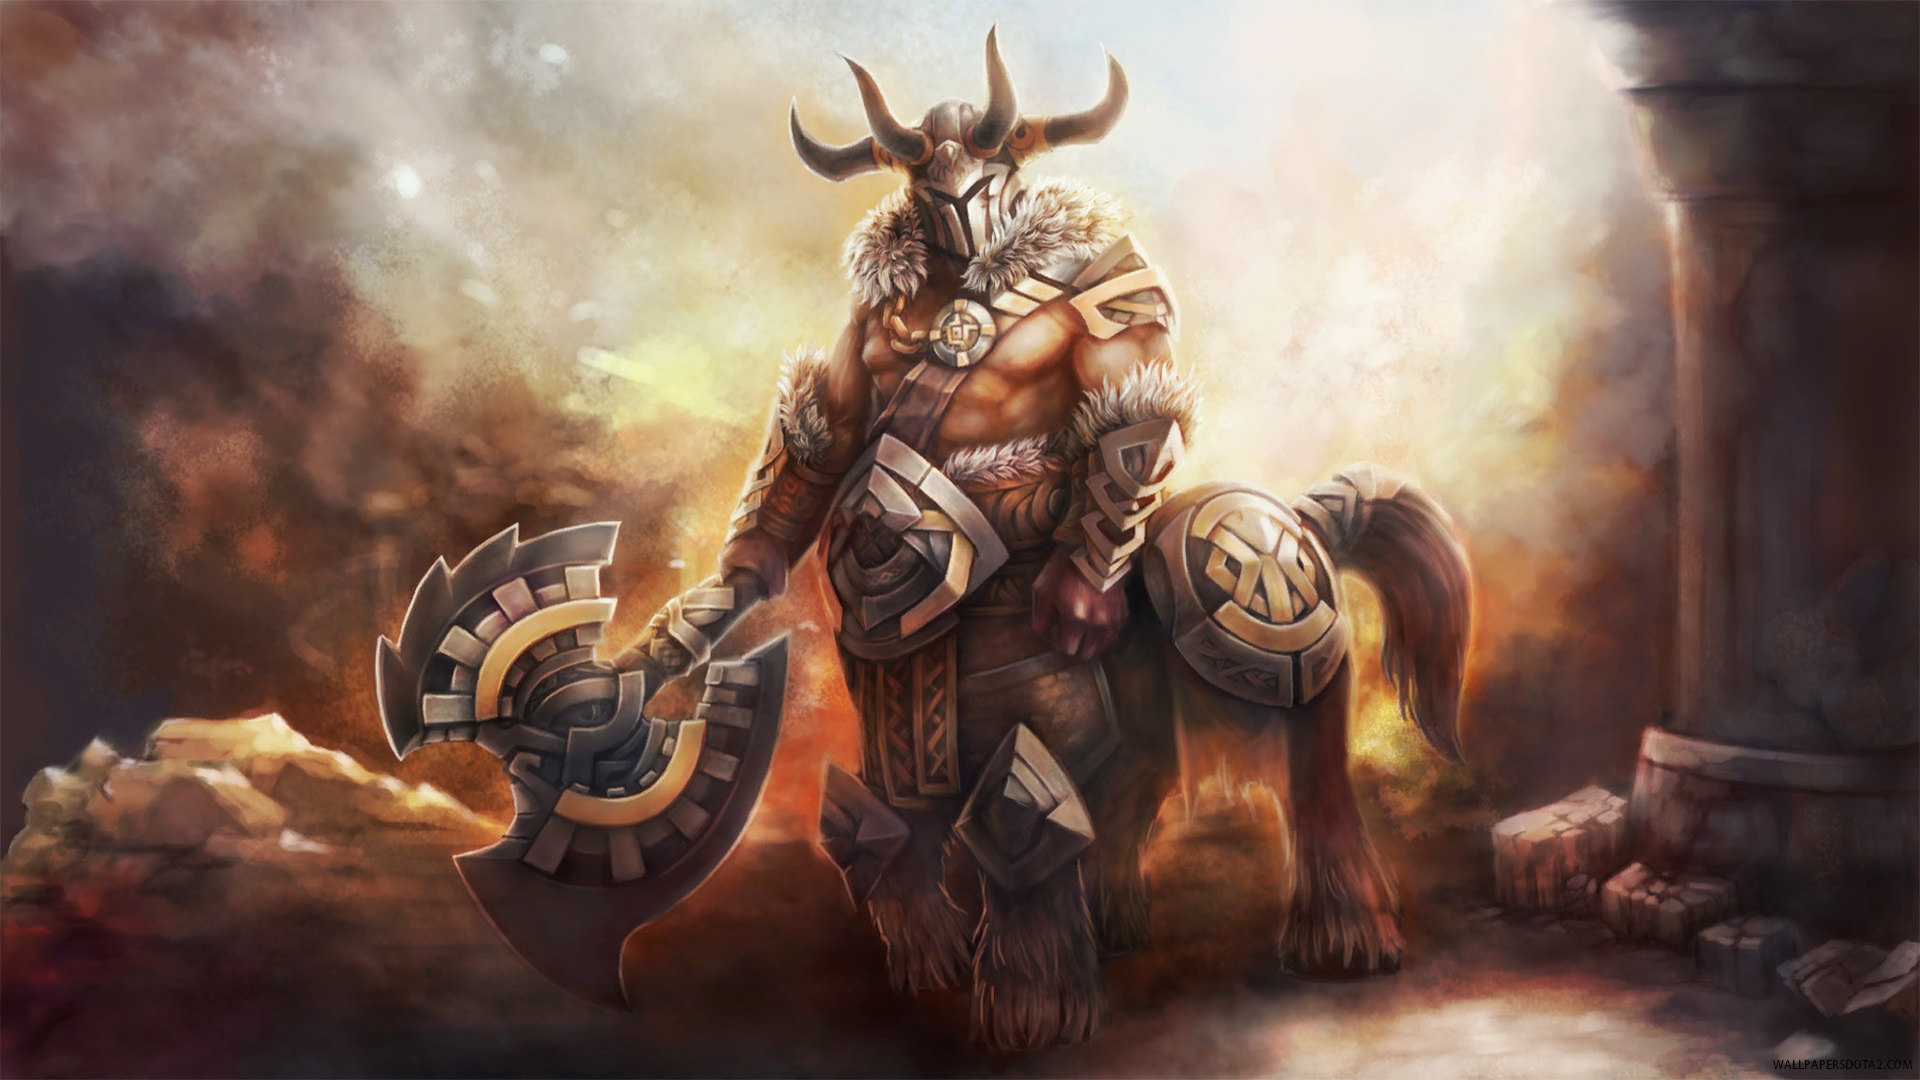 Dota 2 3d Wallpaper For Pc Centaur Warrunner Unbroken Stallion Dota 2 Online Strategy